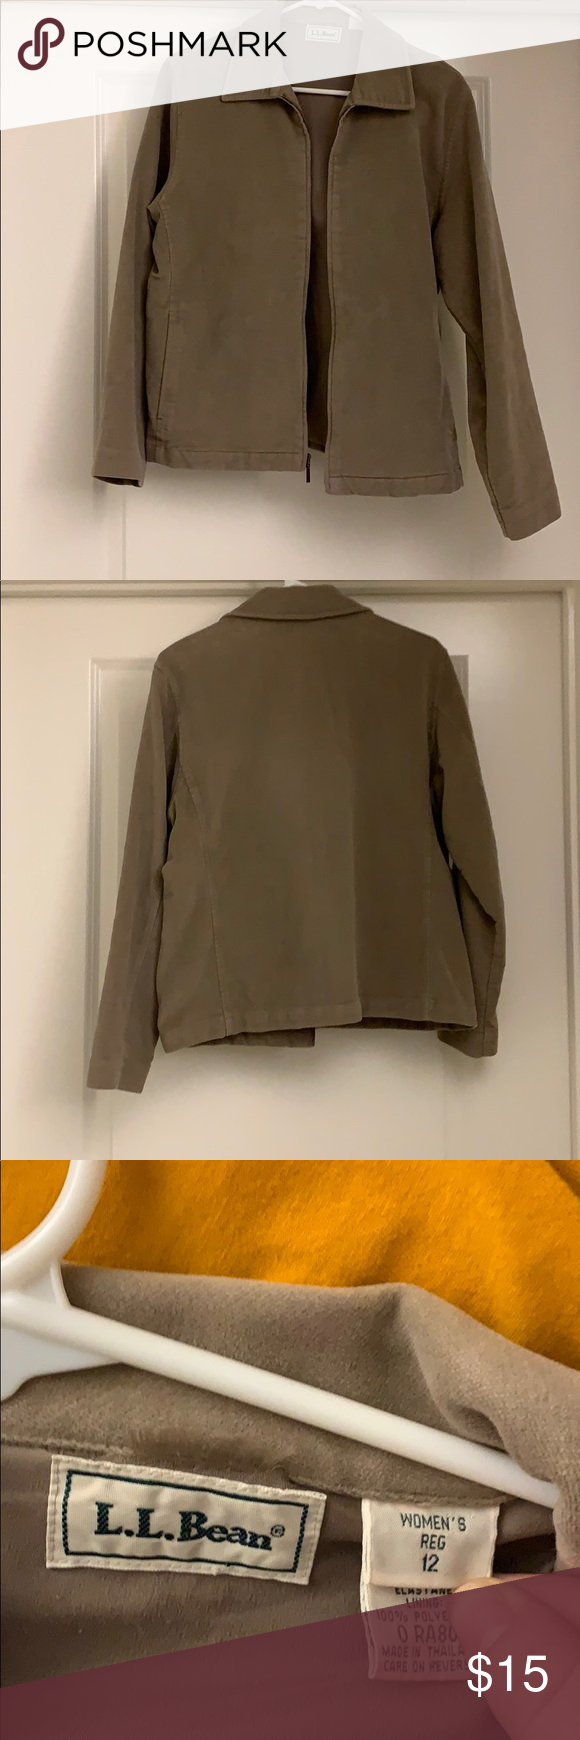 Blazer LL bean Blazer I used to dress up an interview outfit Worn once (got the ...